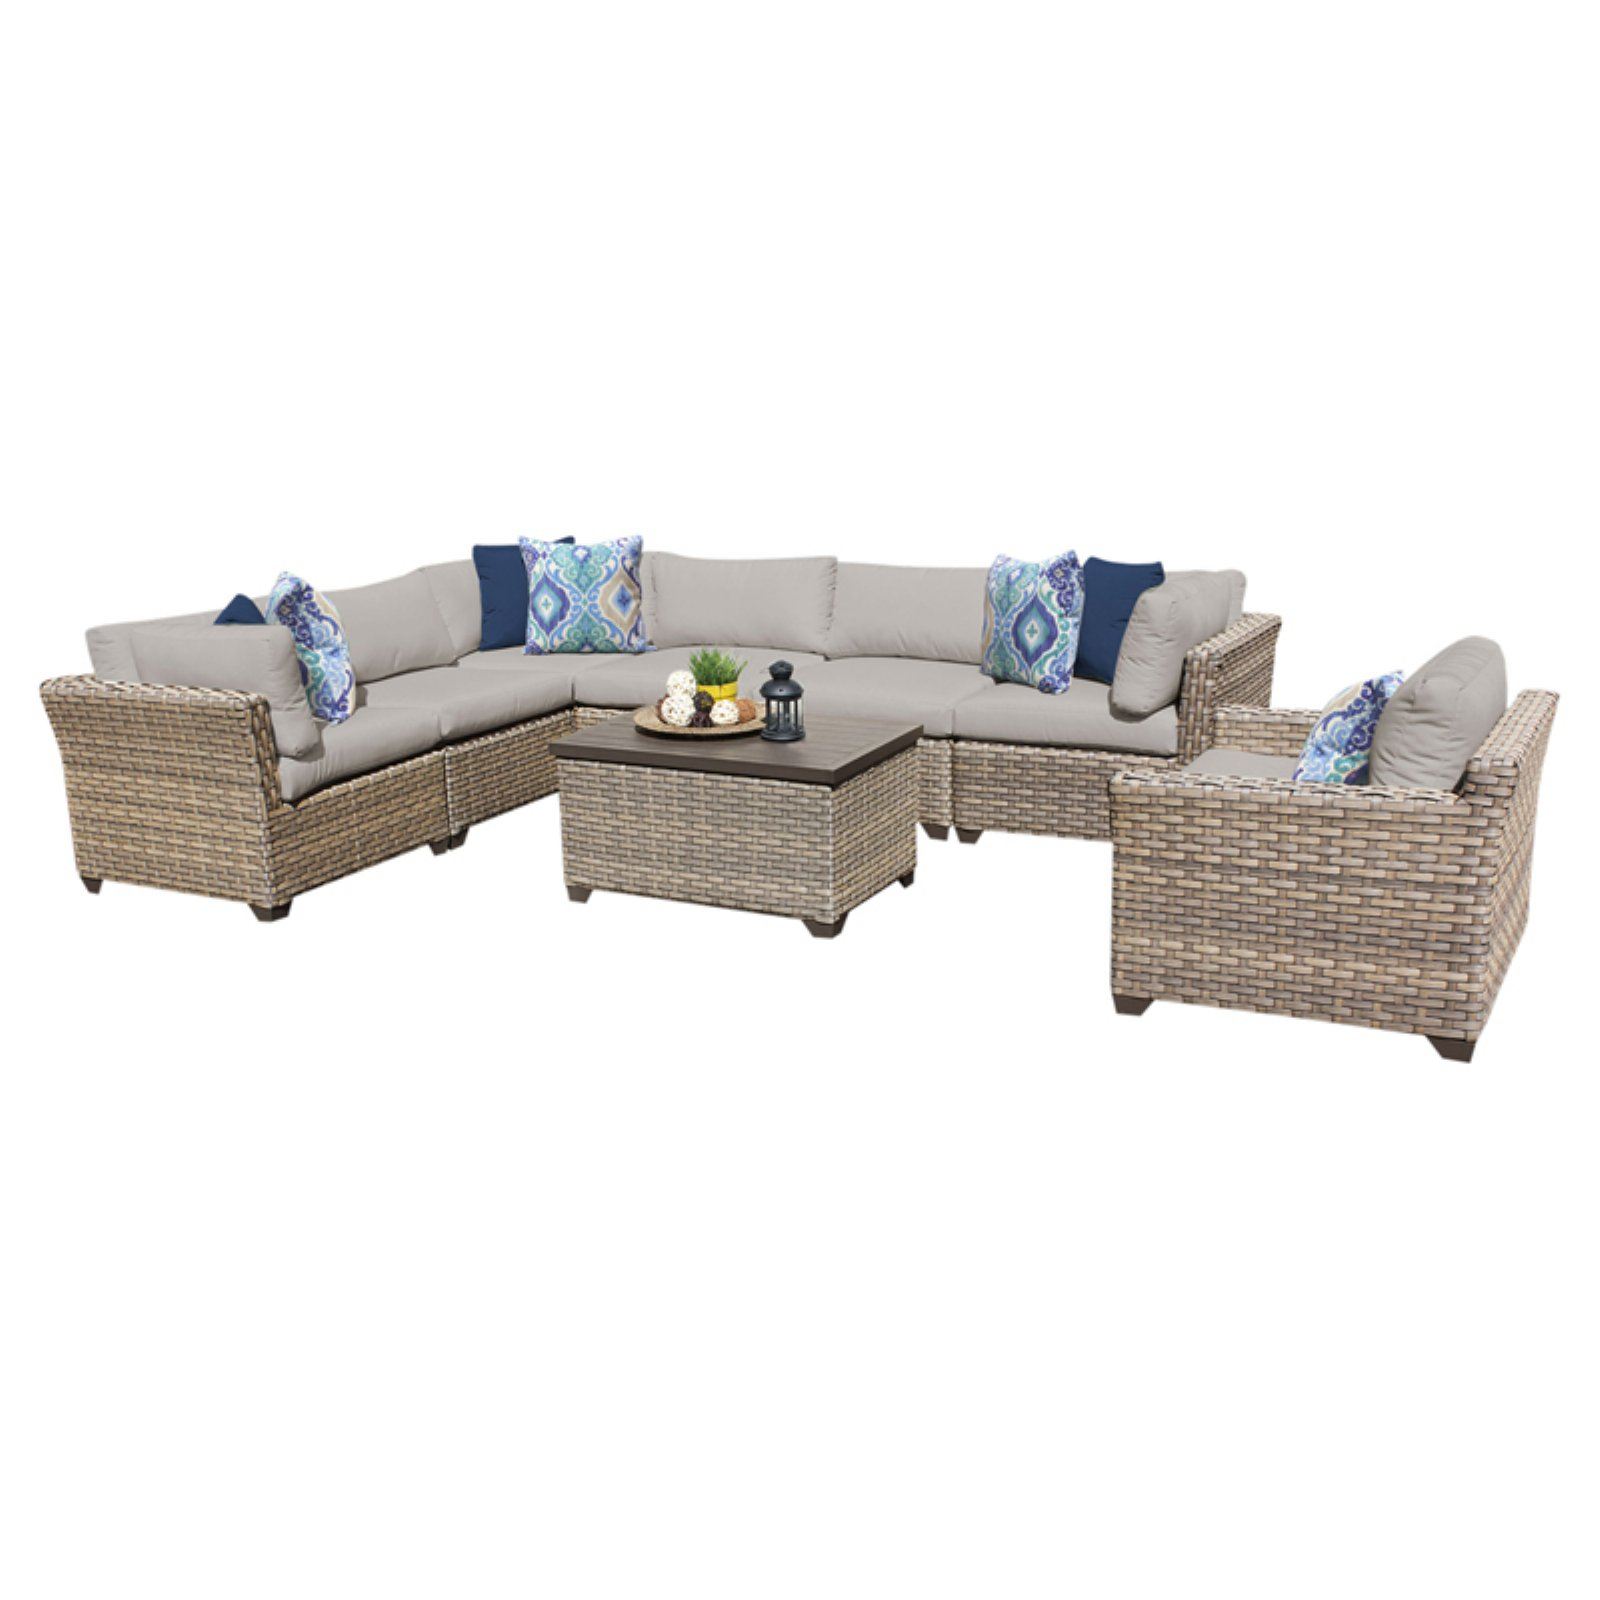 TK Classics Monterey Wicker 8 Piece Patio Conversation Set with 2 Sets of Cushion Covers by TK Classics